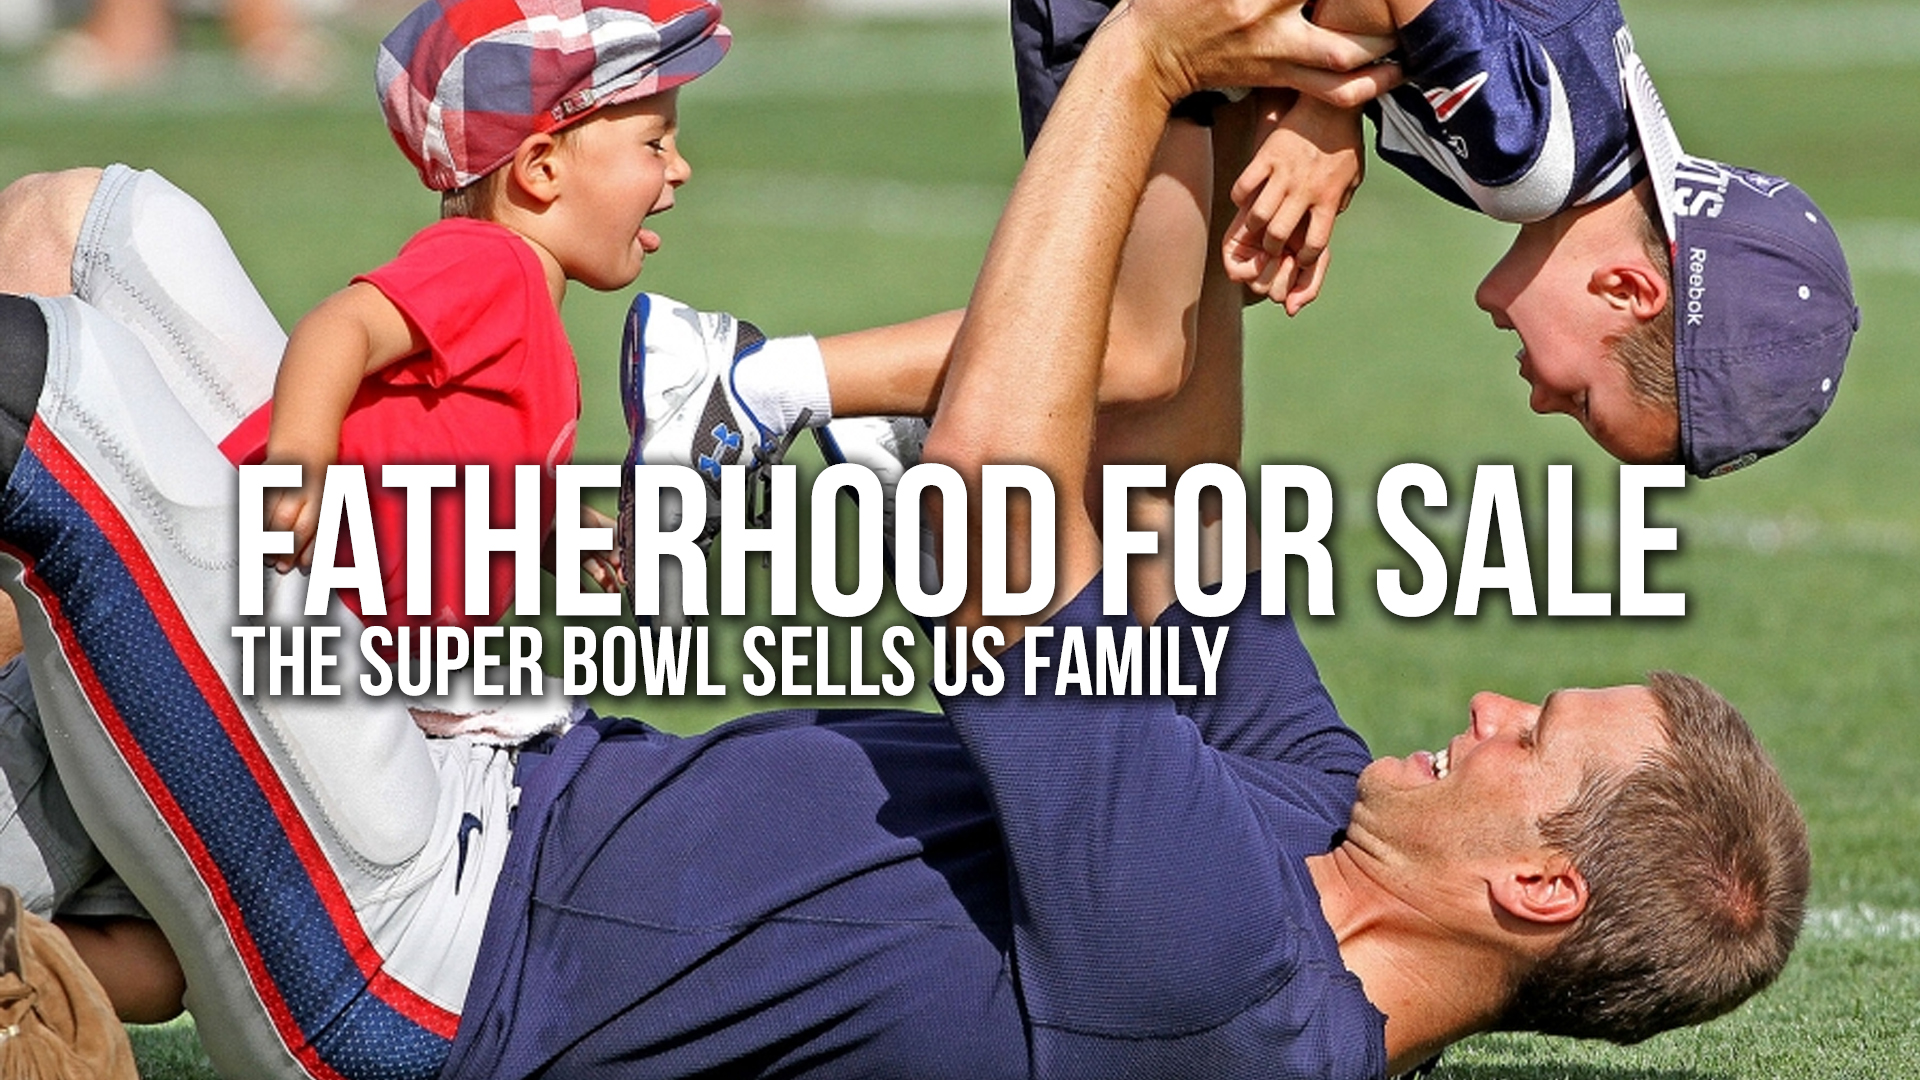 Fatherhood for Sale –  The Super Bowl sells us Family.